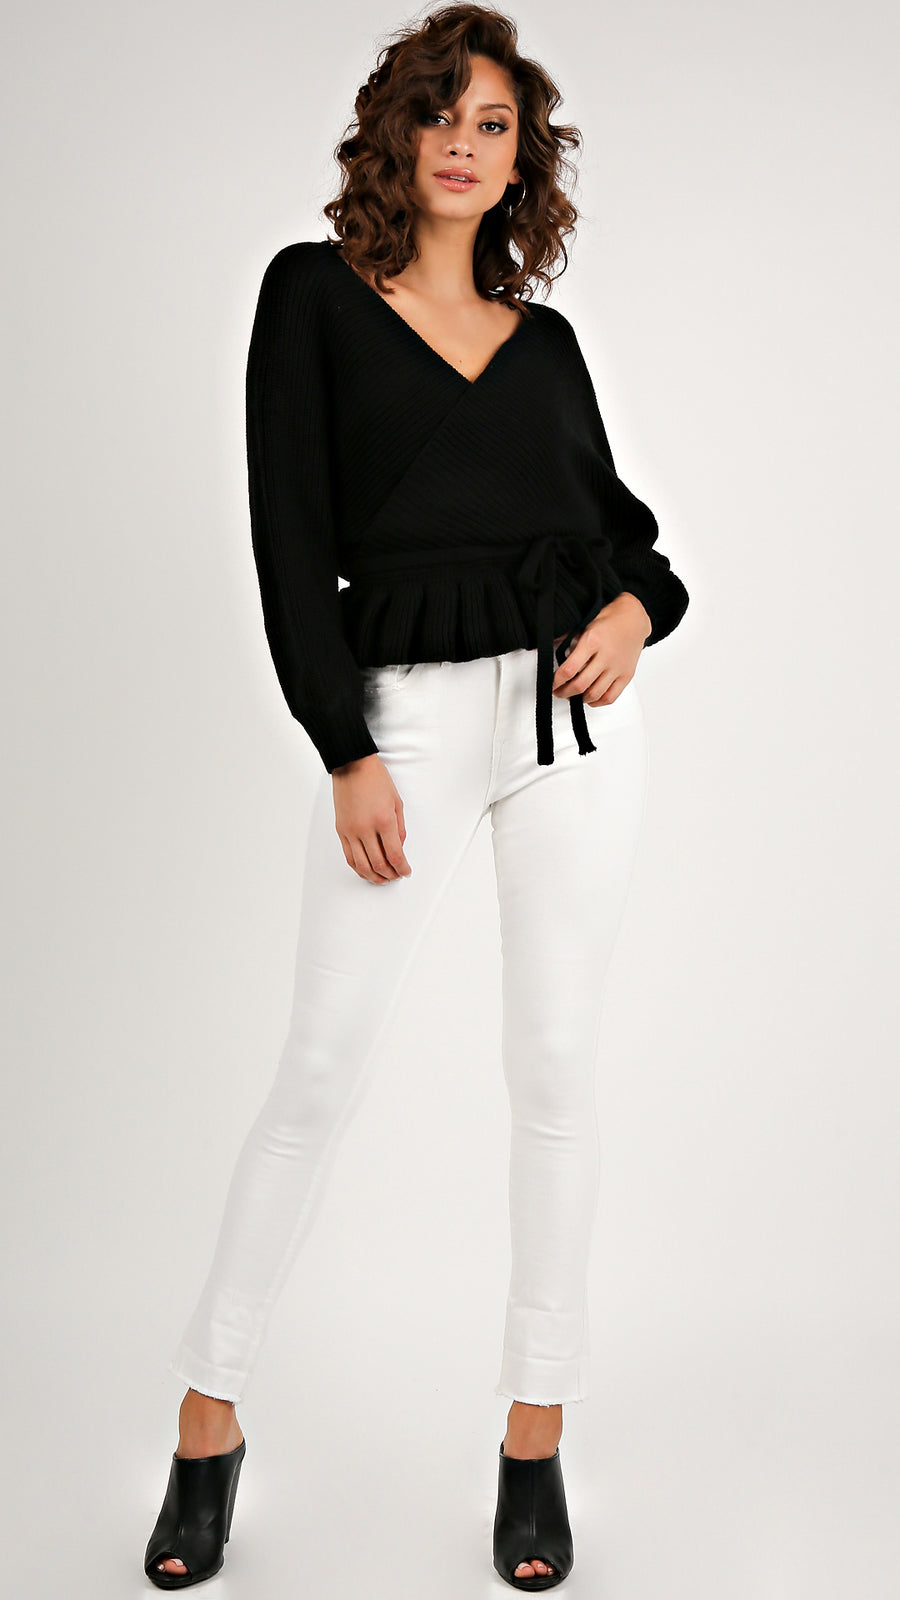 Chic Knit Ruffled Tie Sweater...